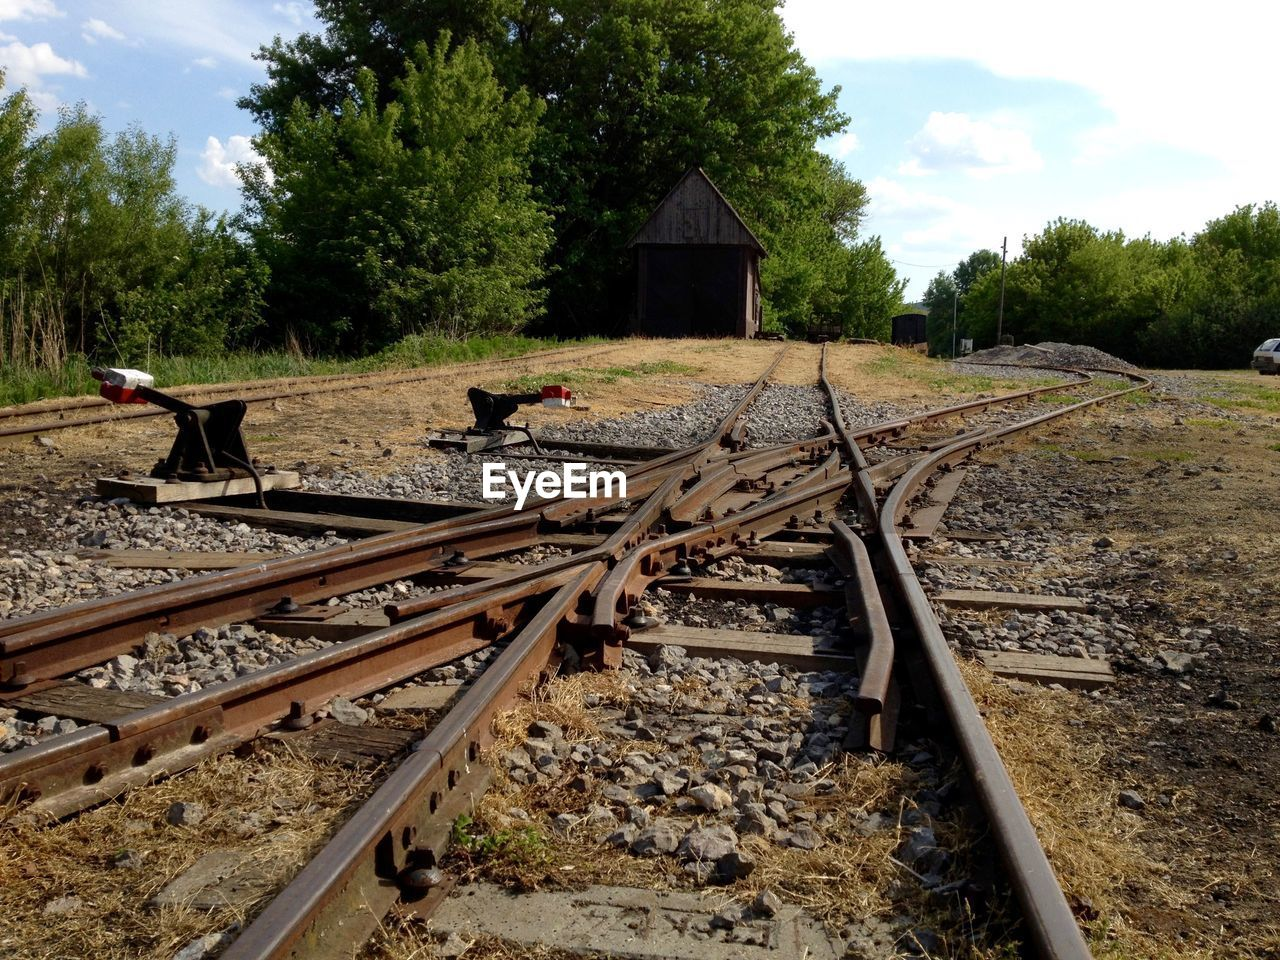 Railroad intersection in shunting yard against sky